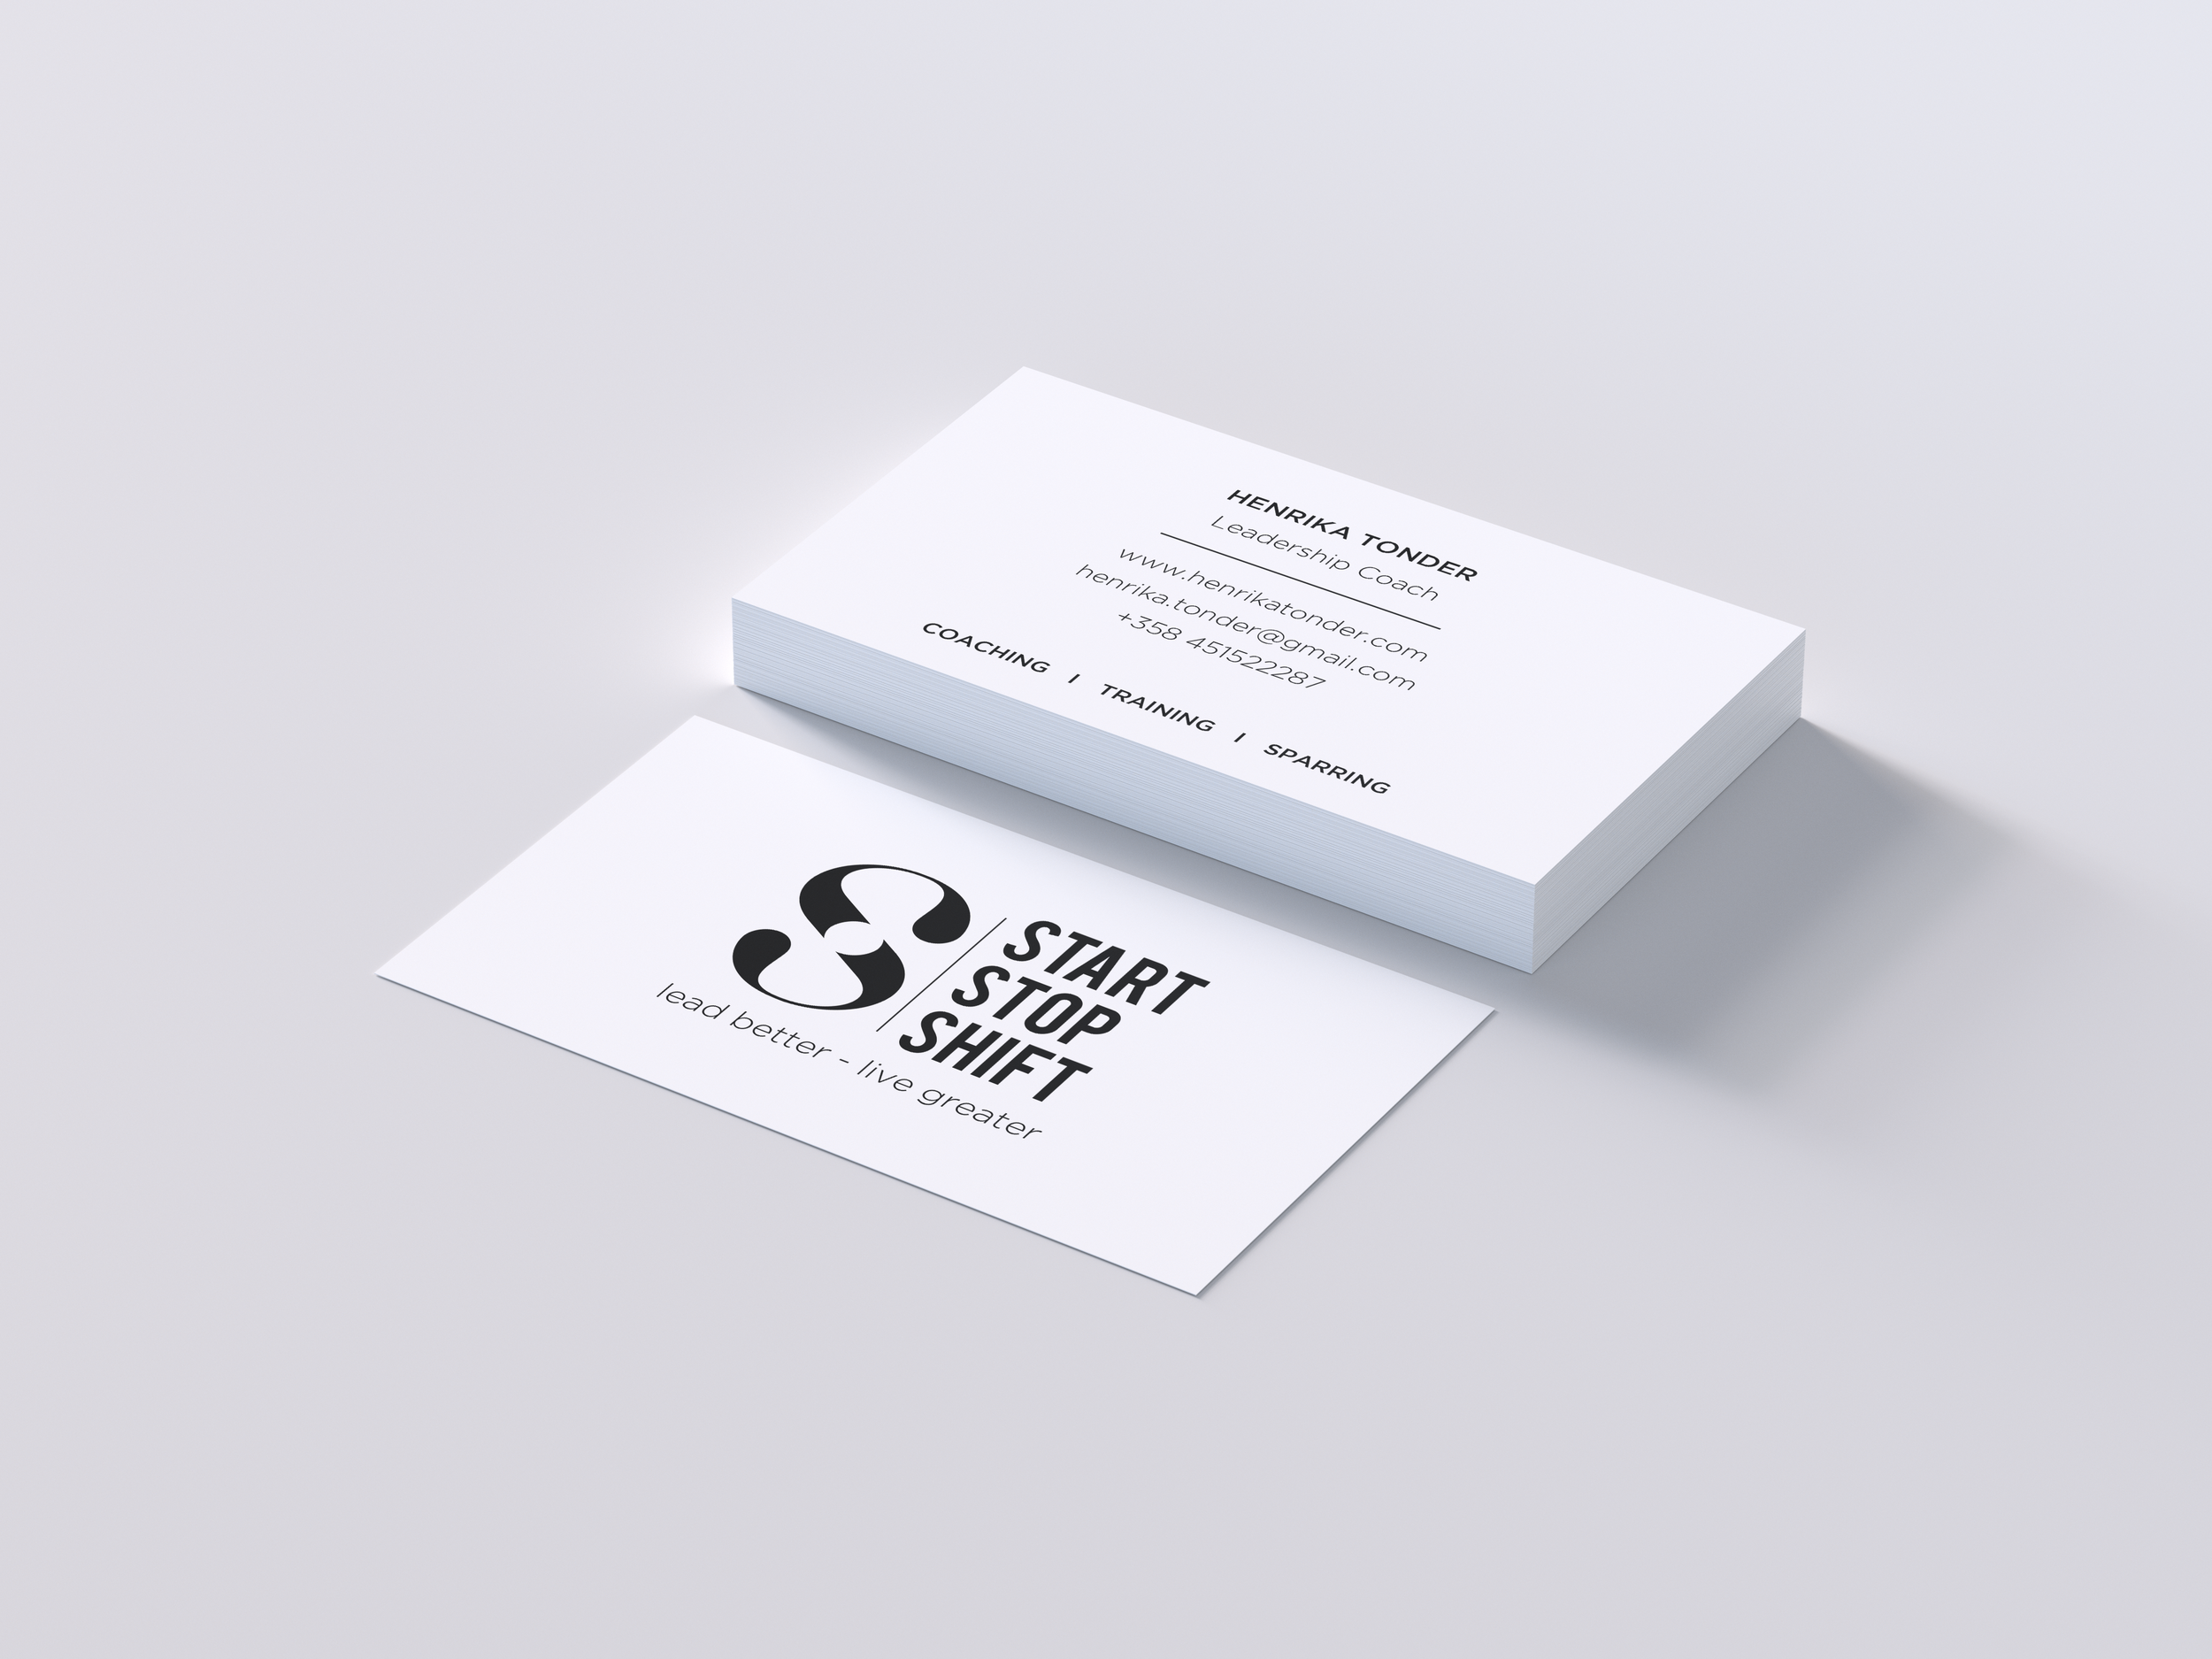 Business Card for the Method - Start Stop Shift